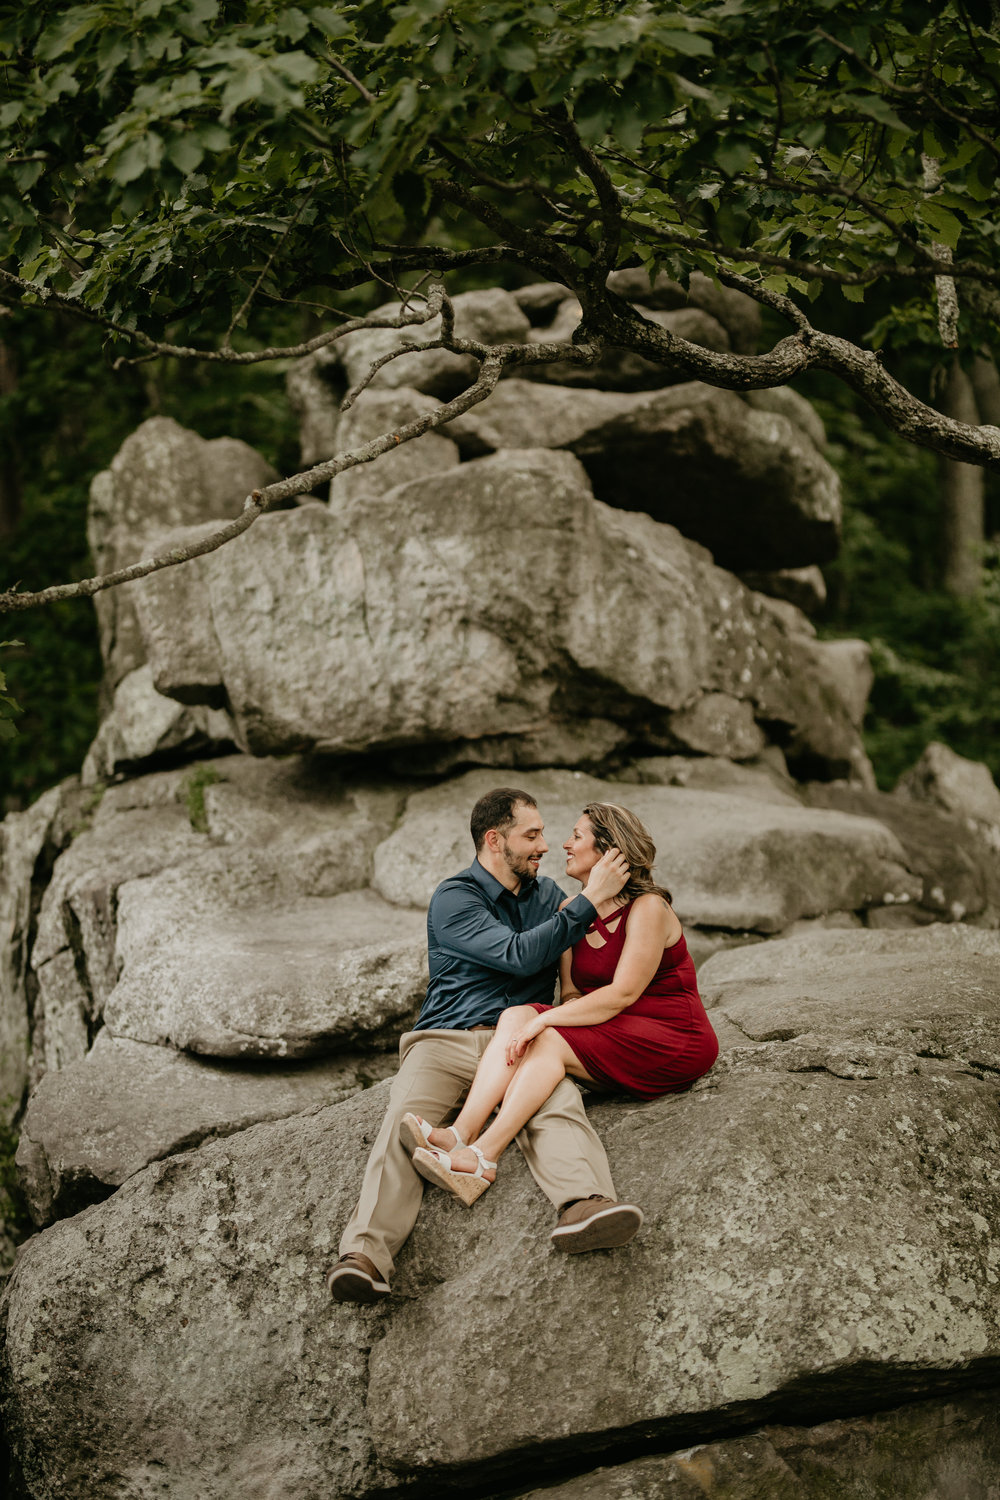 Nicole-Daacke-Photography-rock-state-park-overlook-king-queen-seat-maryland-hiking-adventure-engagement-session-photos-portraits-summer-bel-air-dog-engagement-session-19.jpg